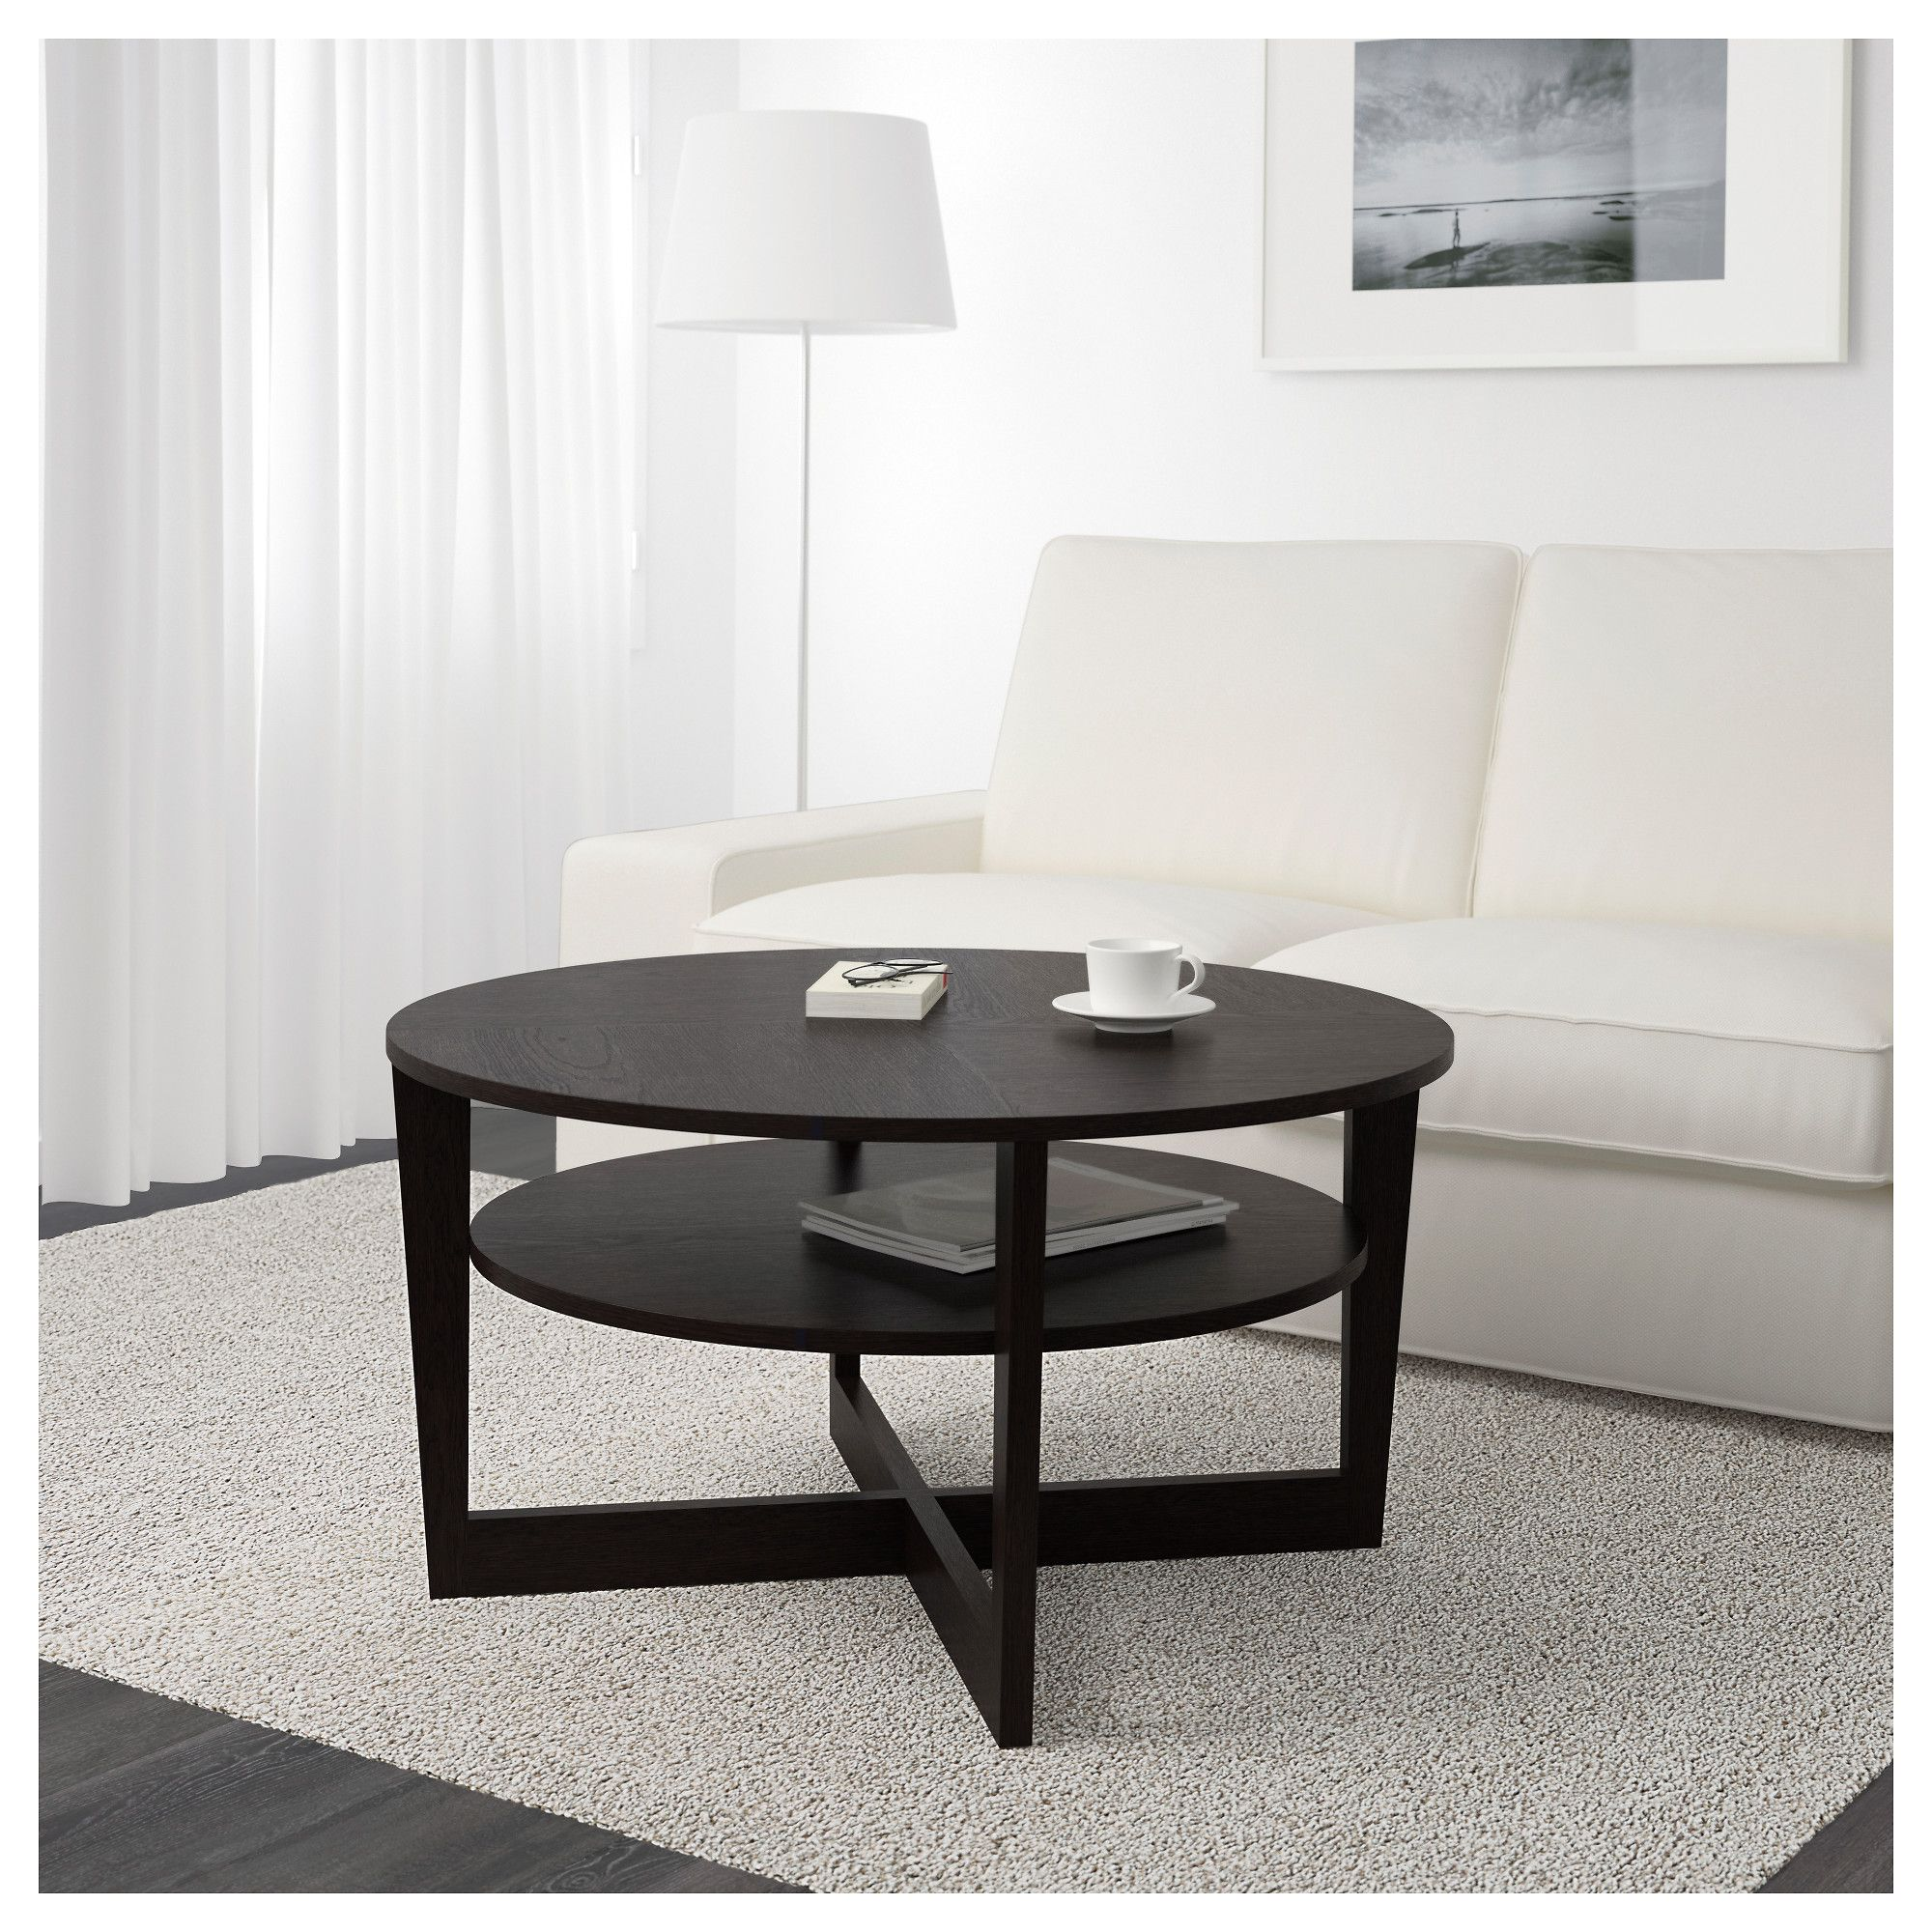 Home Outdoor Furniture Affordable Well Designed Ikea Side Table Coffee Table Ikea Lack Side Table [ 2000 x 2000 Pixel ]